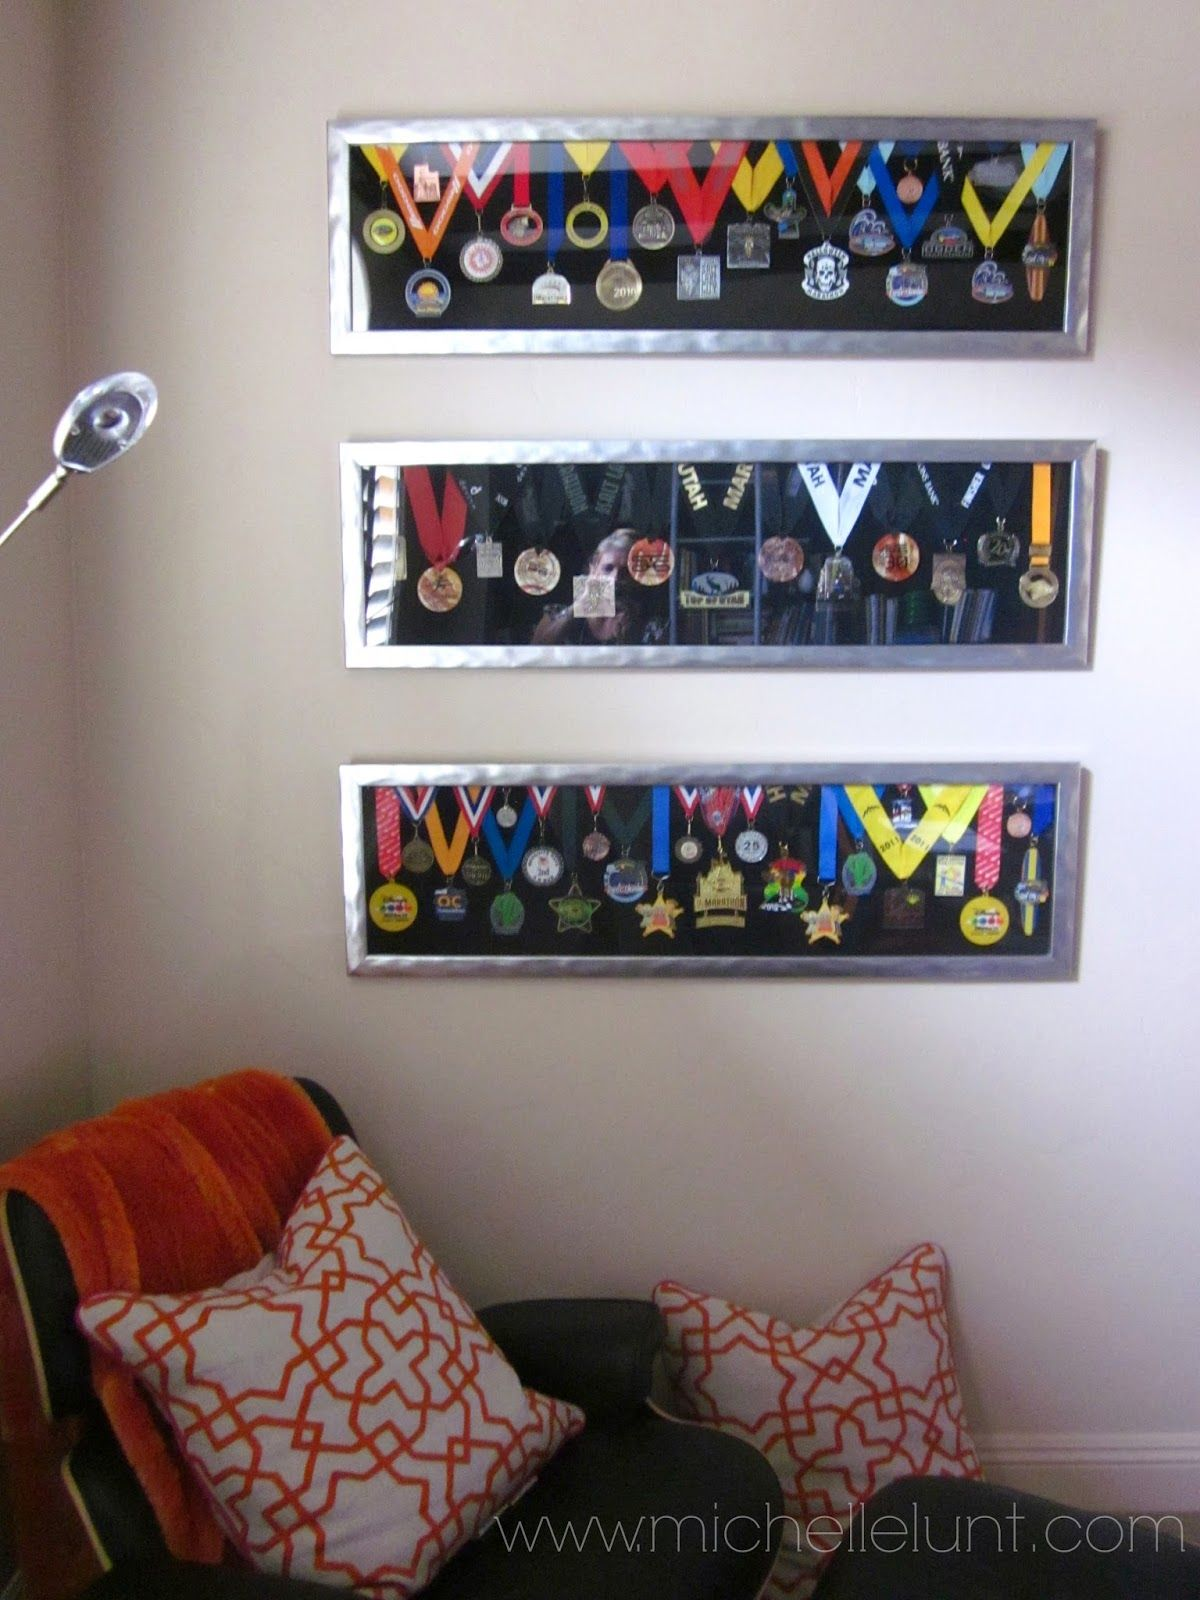 3 way displays ford f150 stereo wiring diagram how to display marathon medals gift ideas pinterest